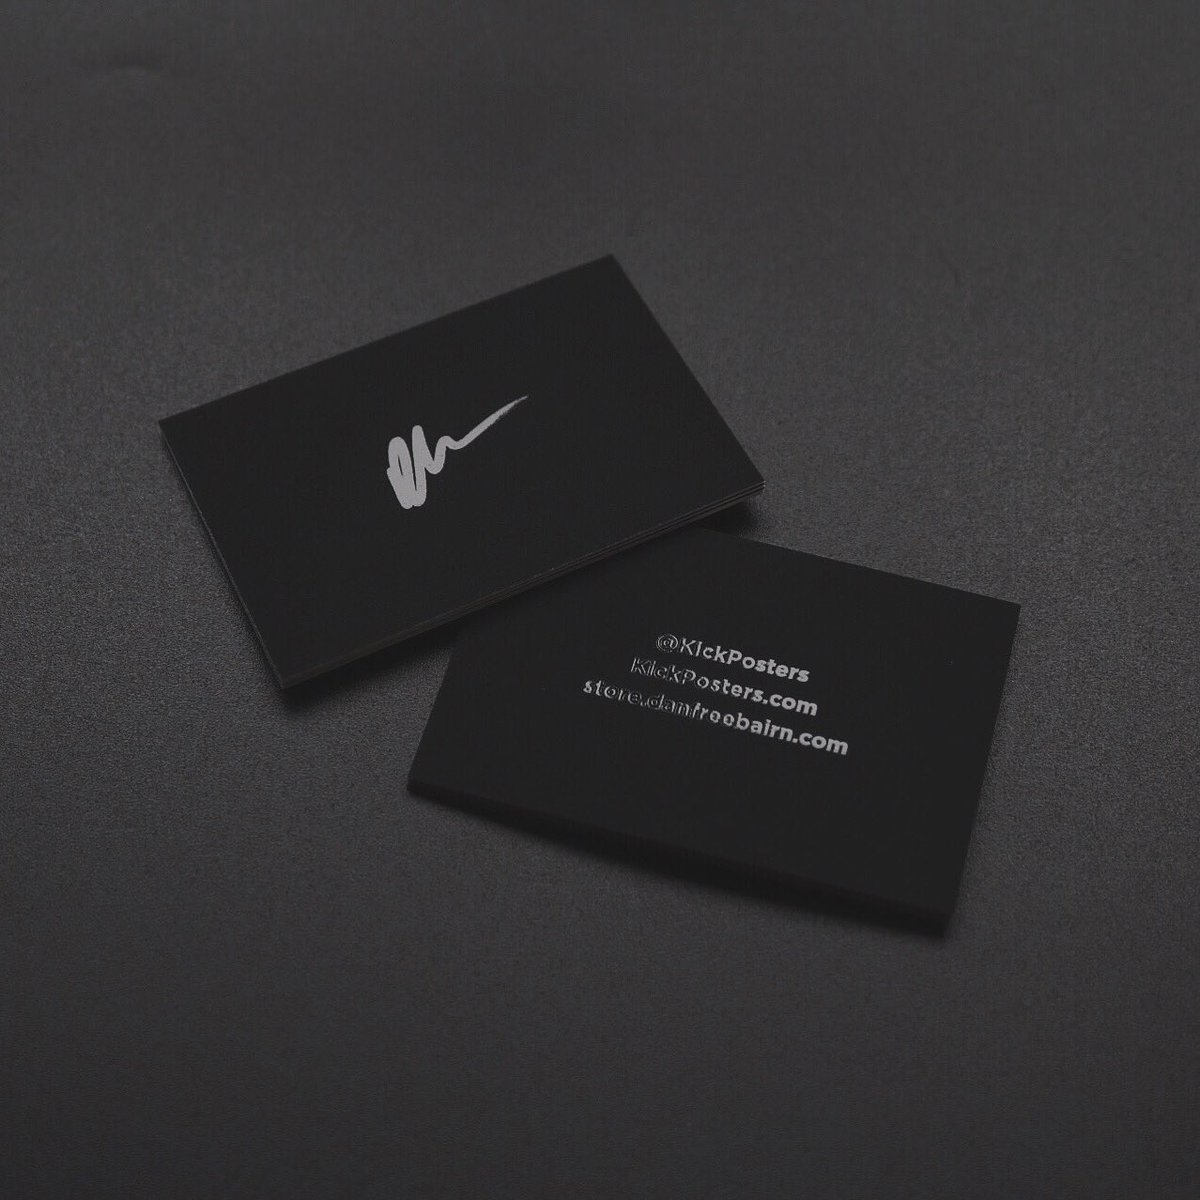 Dan freebairn on twitter new gloss black on matte black business dan freebairn on twitter new gloss black on matte black business cards via moo reheart Choice Image